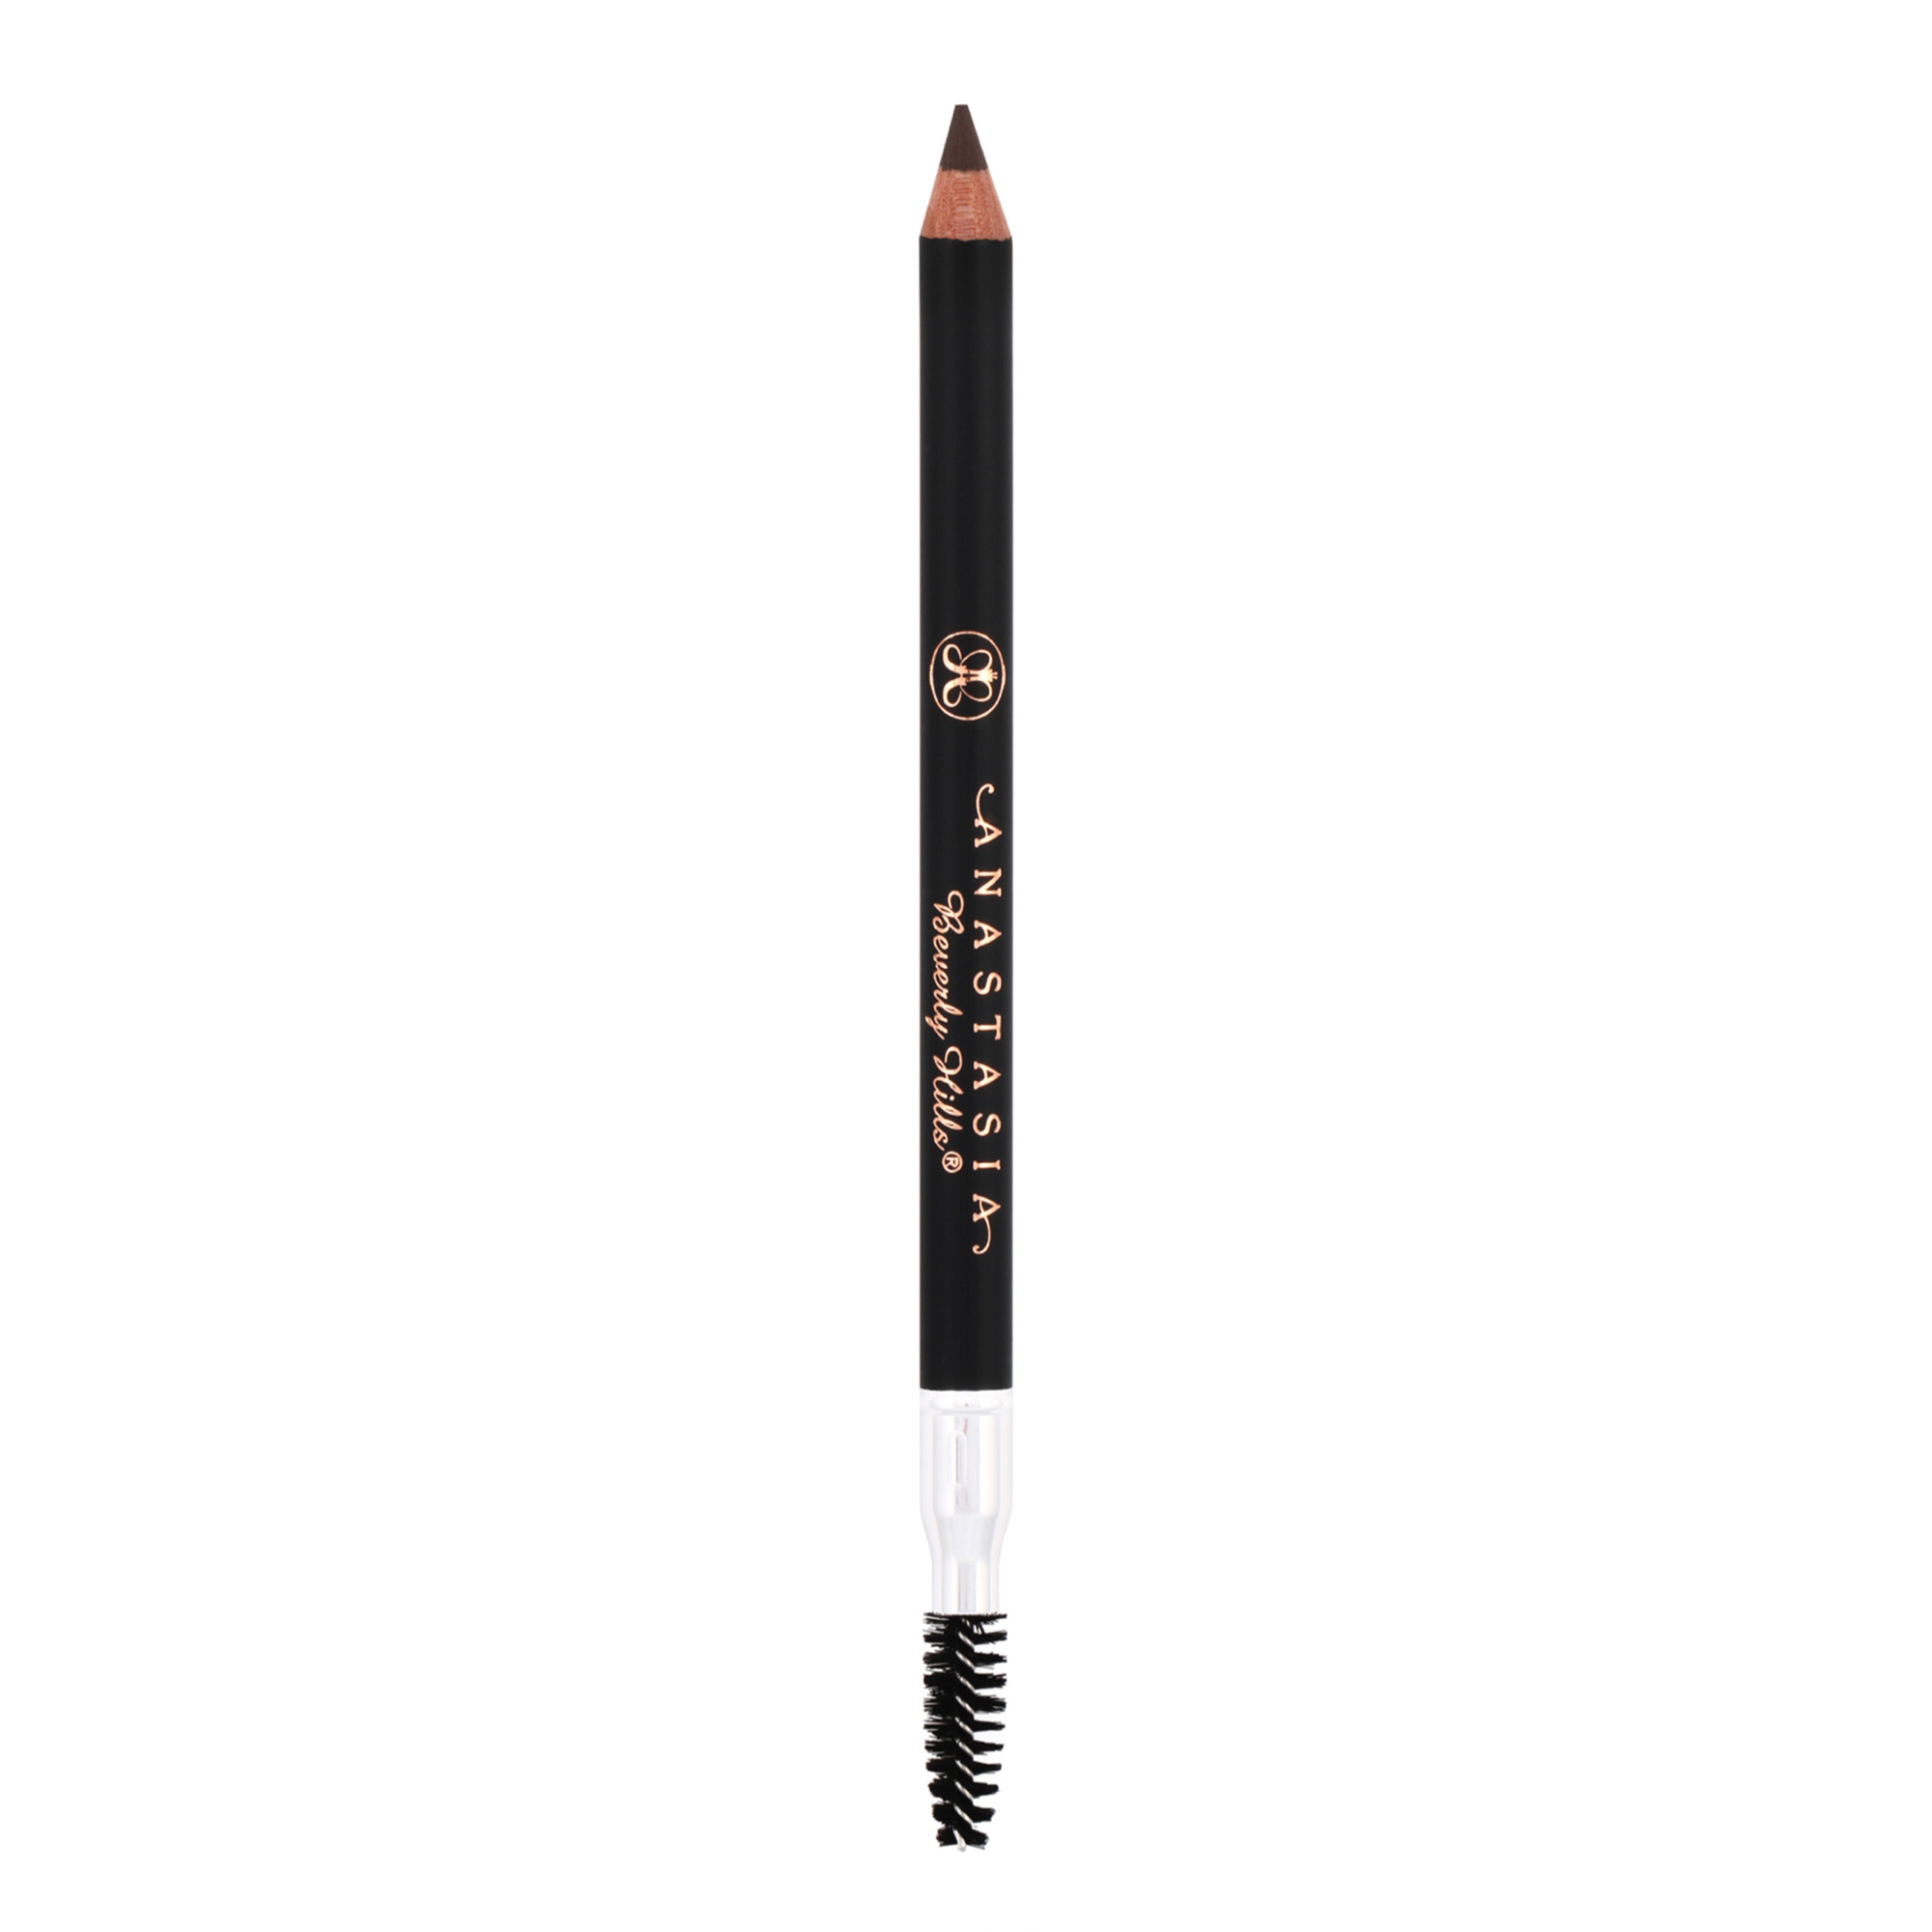 eyebrow pencil. eyebrow pencil anastasia beverly hills